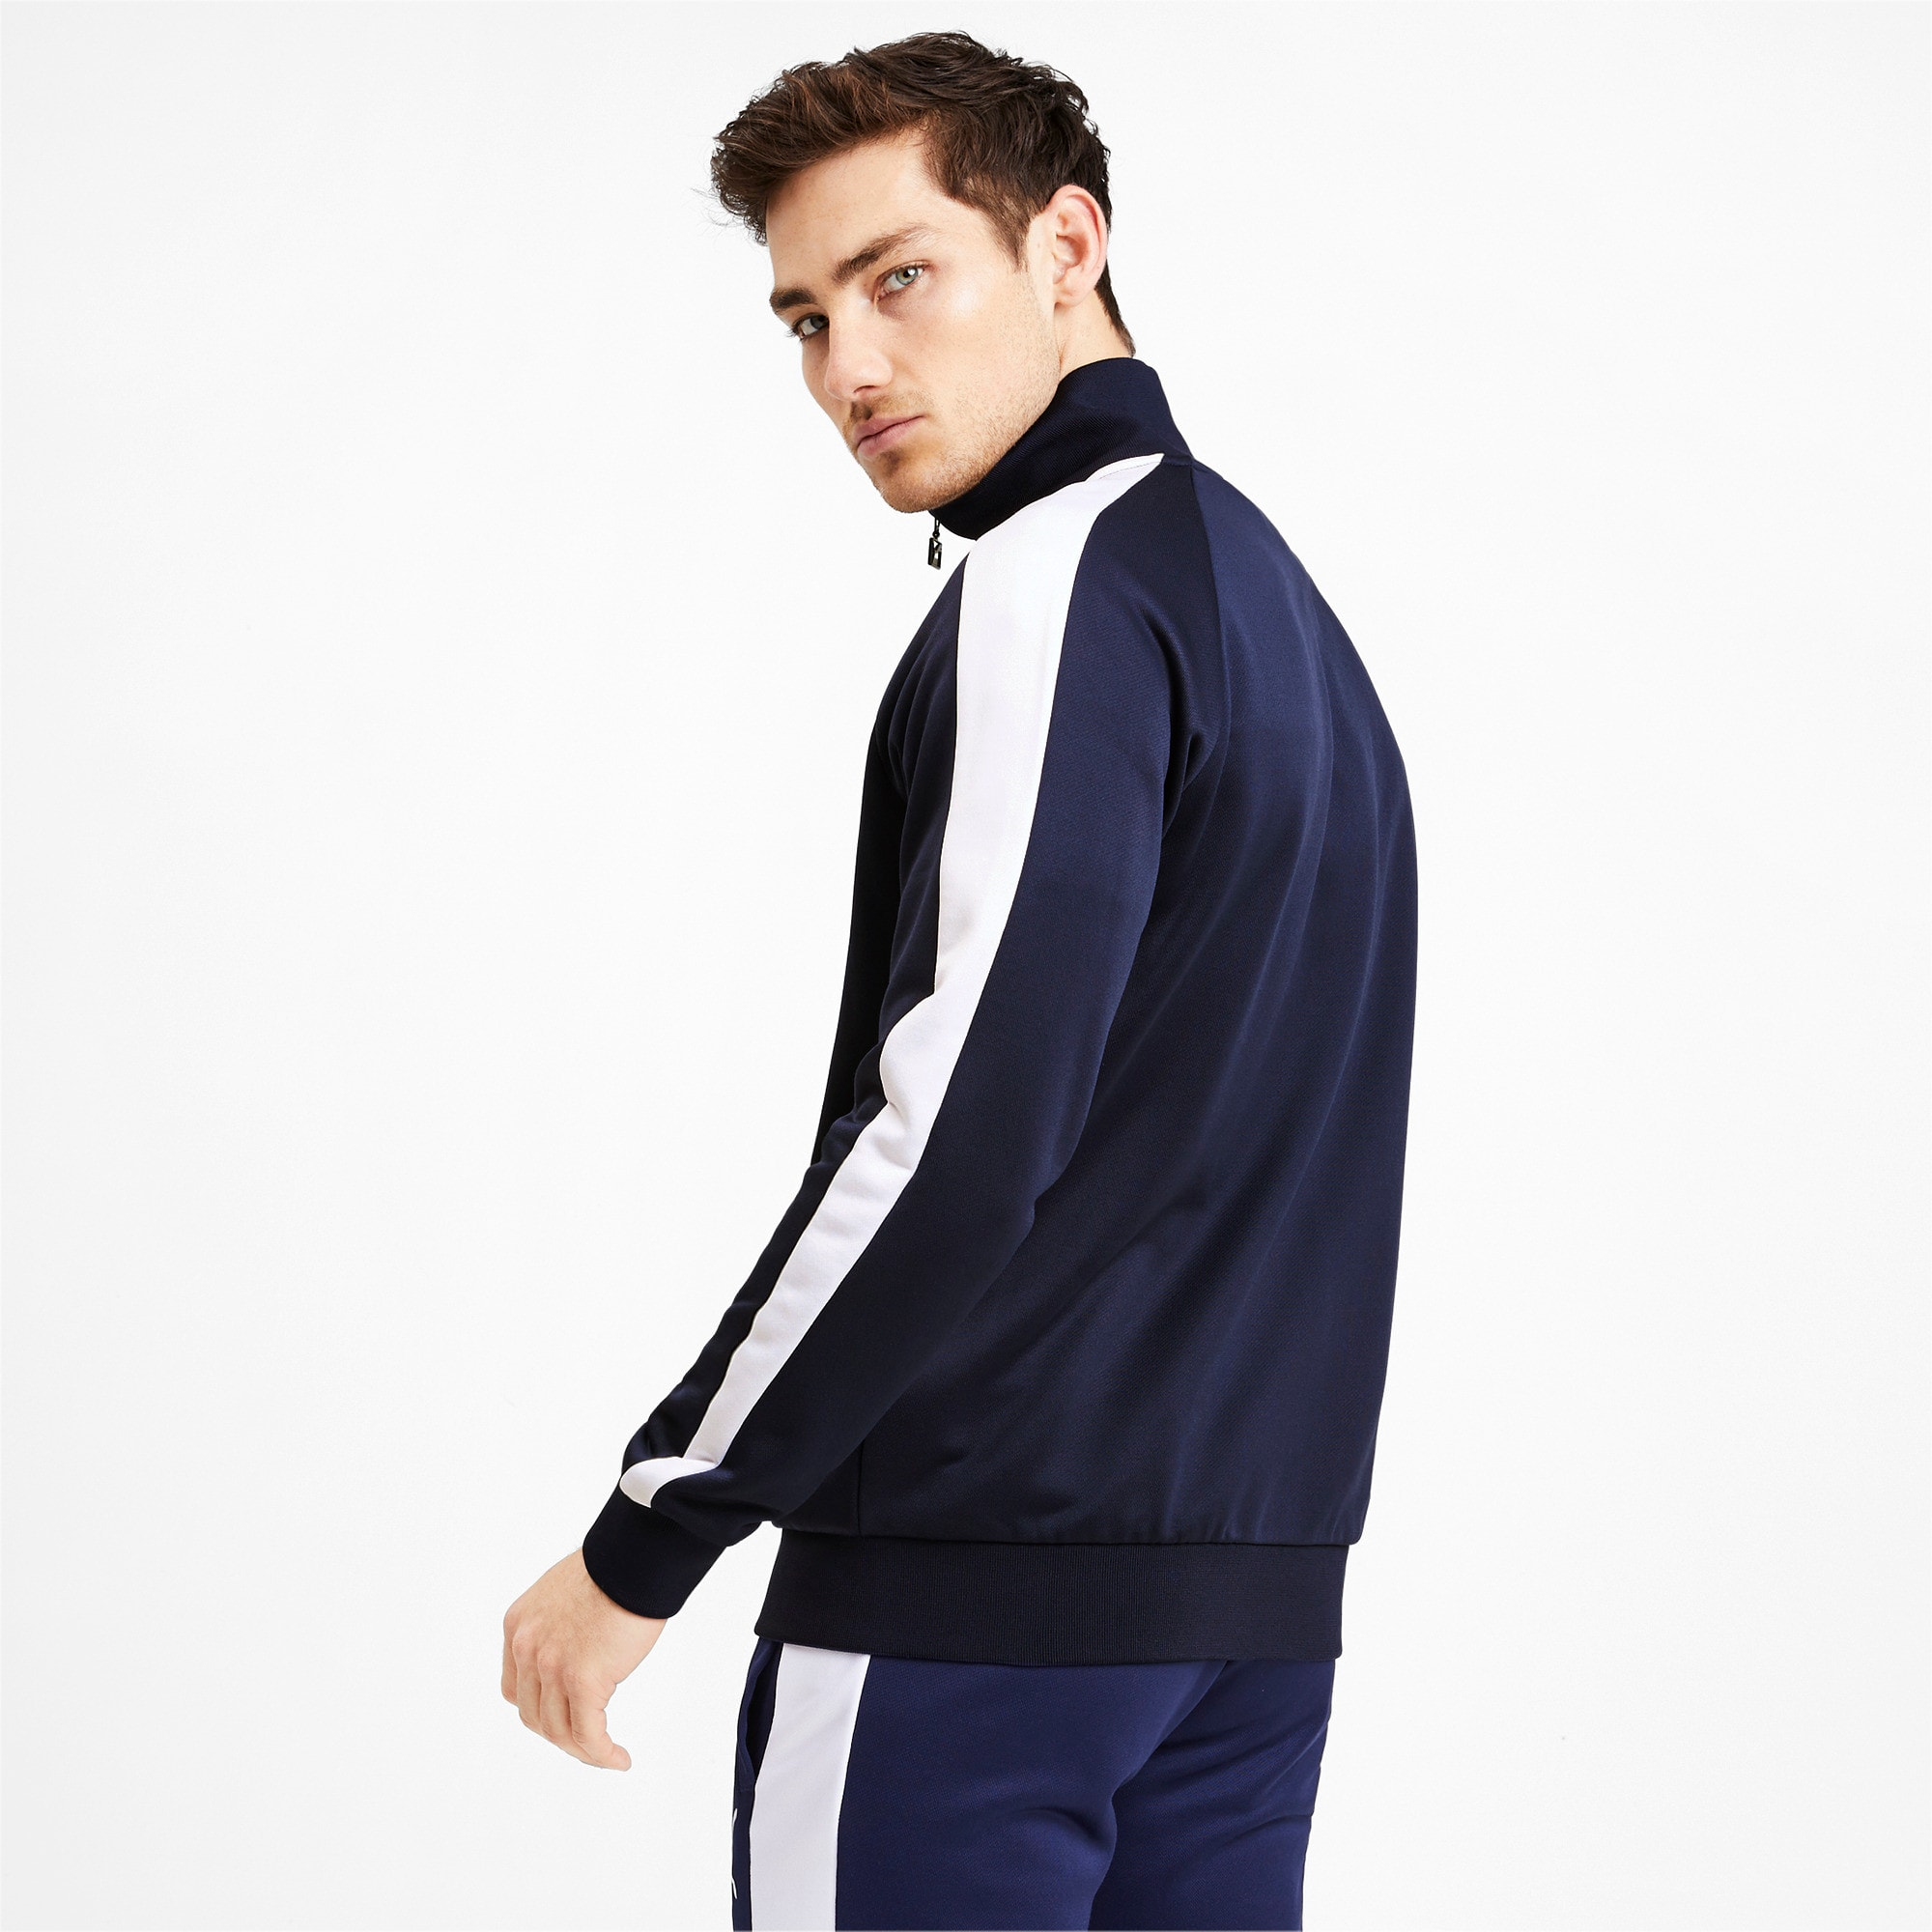 Thumbnail 3 of Iconic T7 Men's Track Jacket, Peacoat, medium